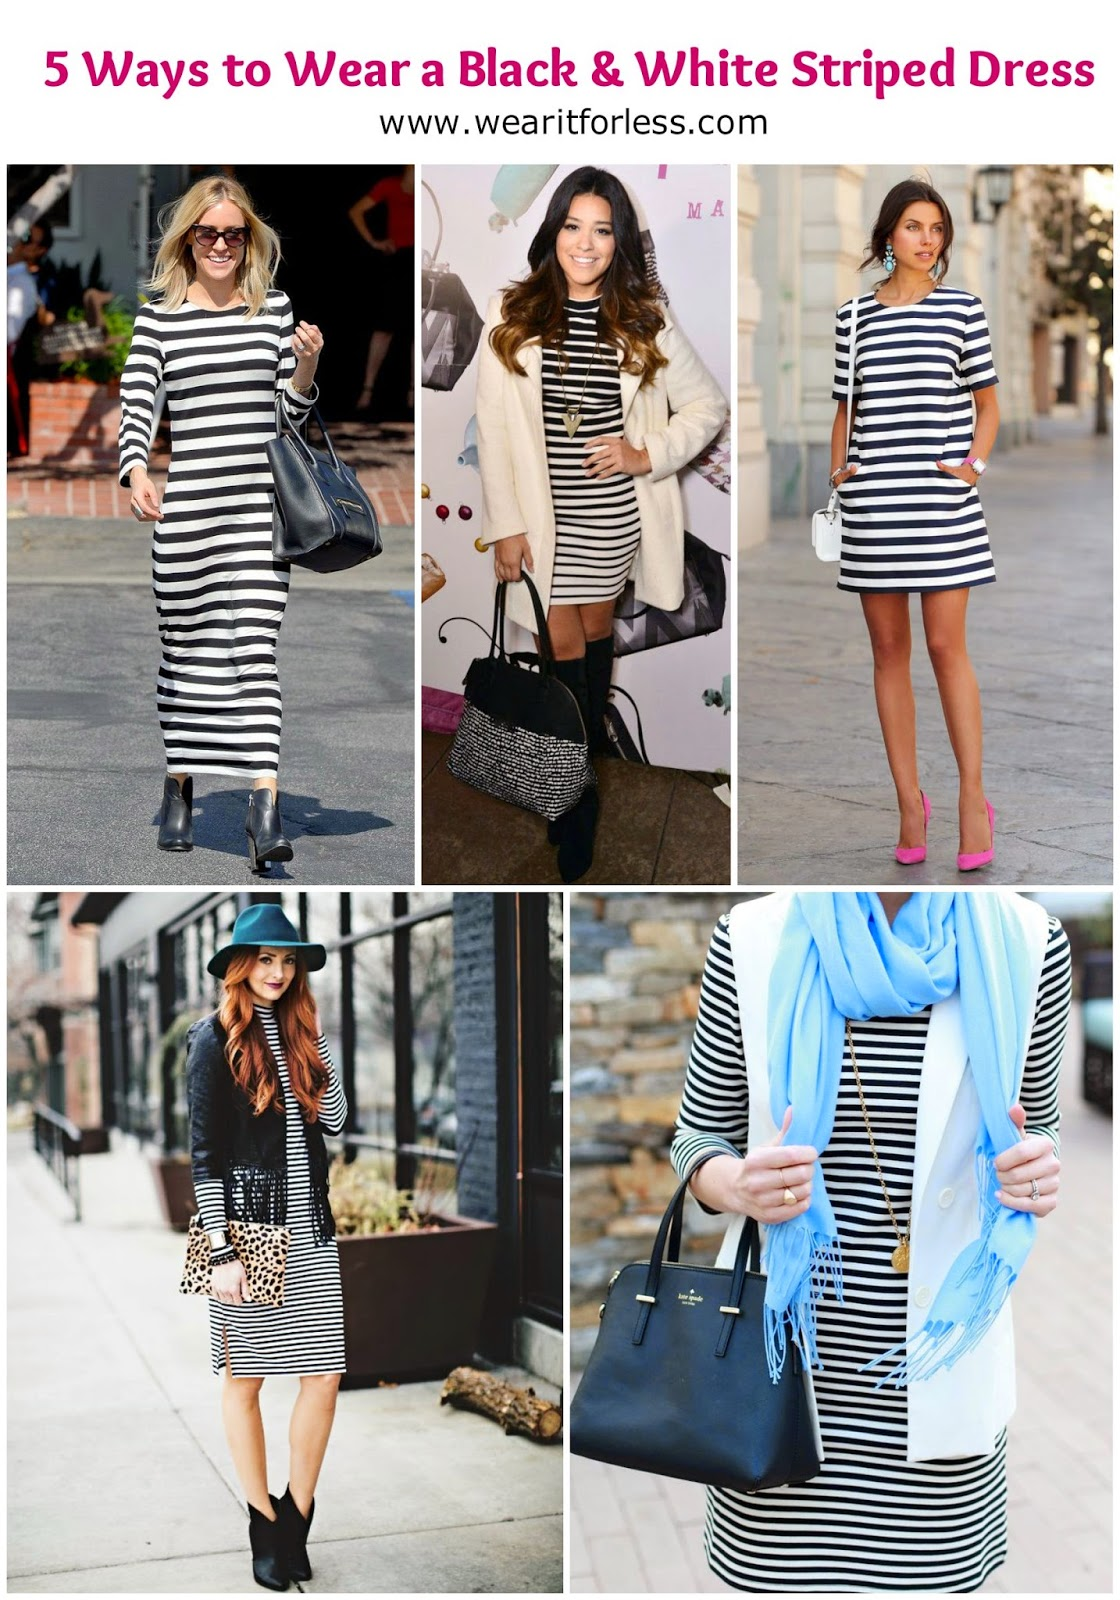 Costume Ideas With Black And White Stripes Black And White Striped